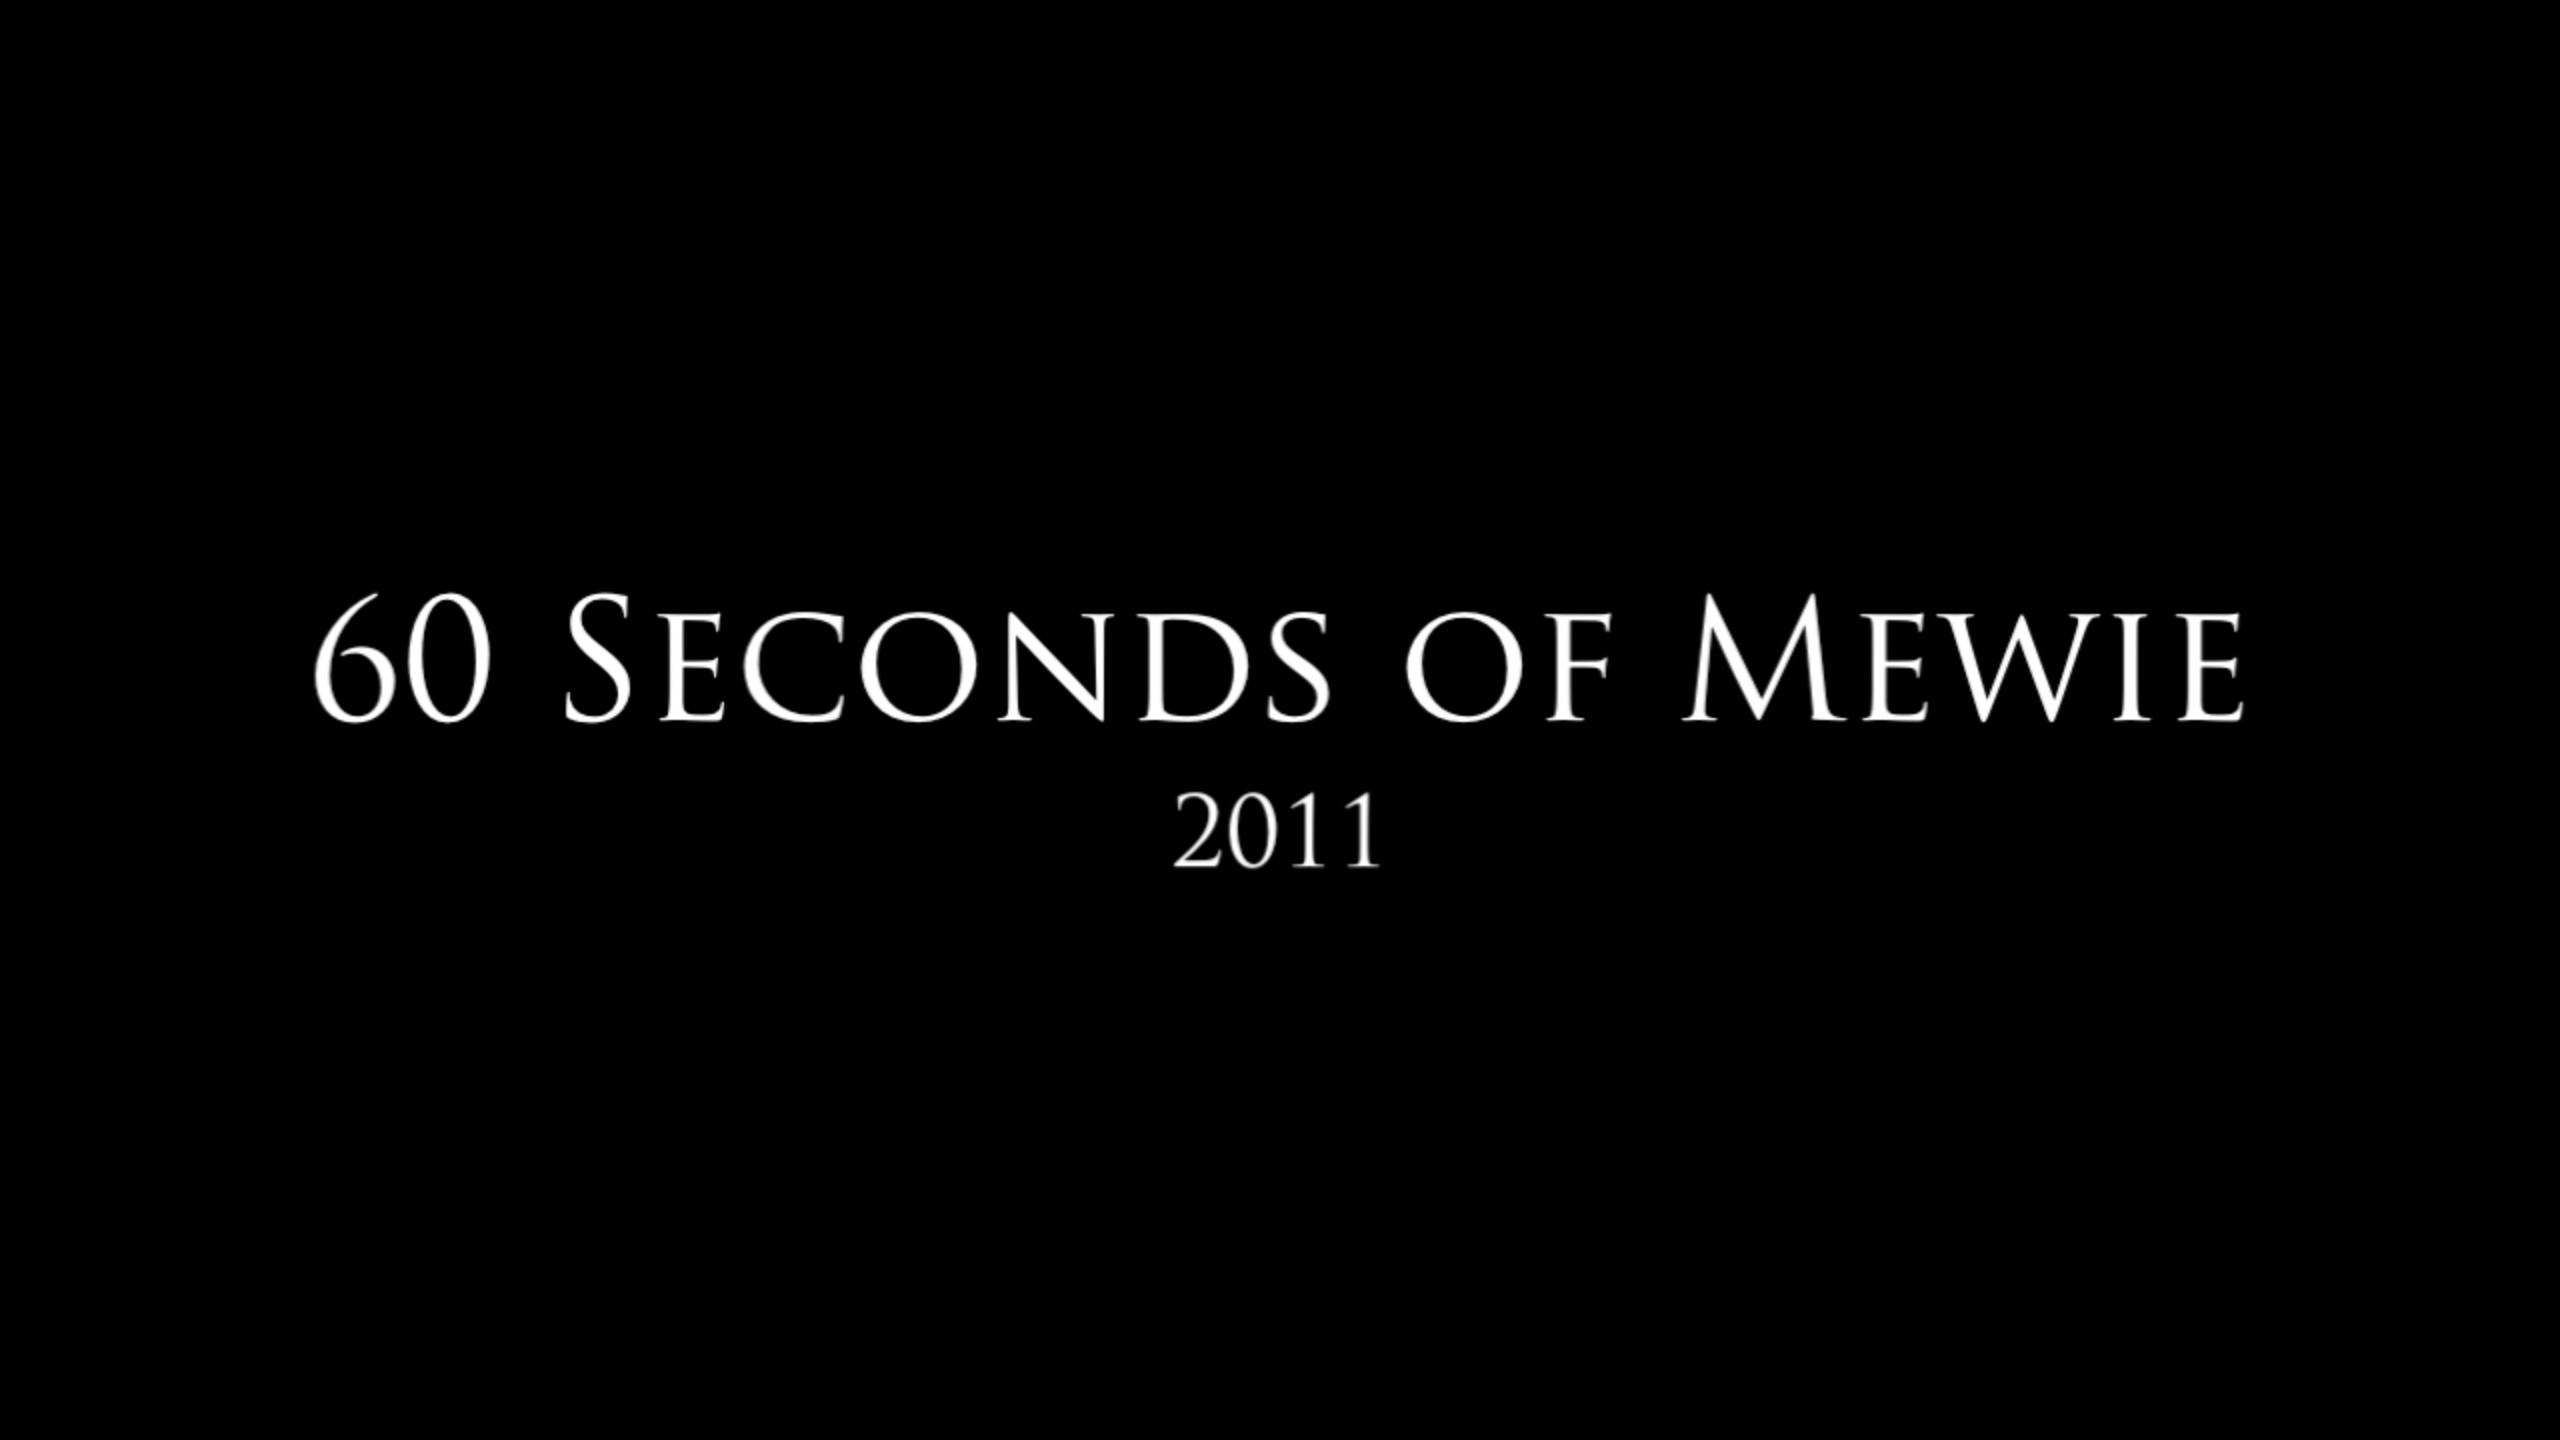 60 Seconds of Mewie – 2011